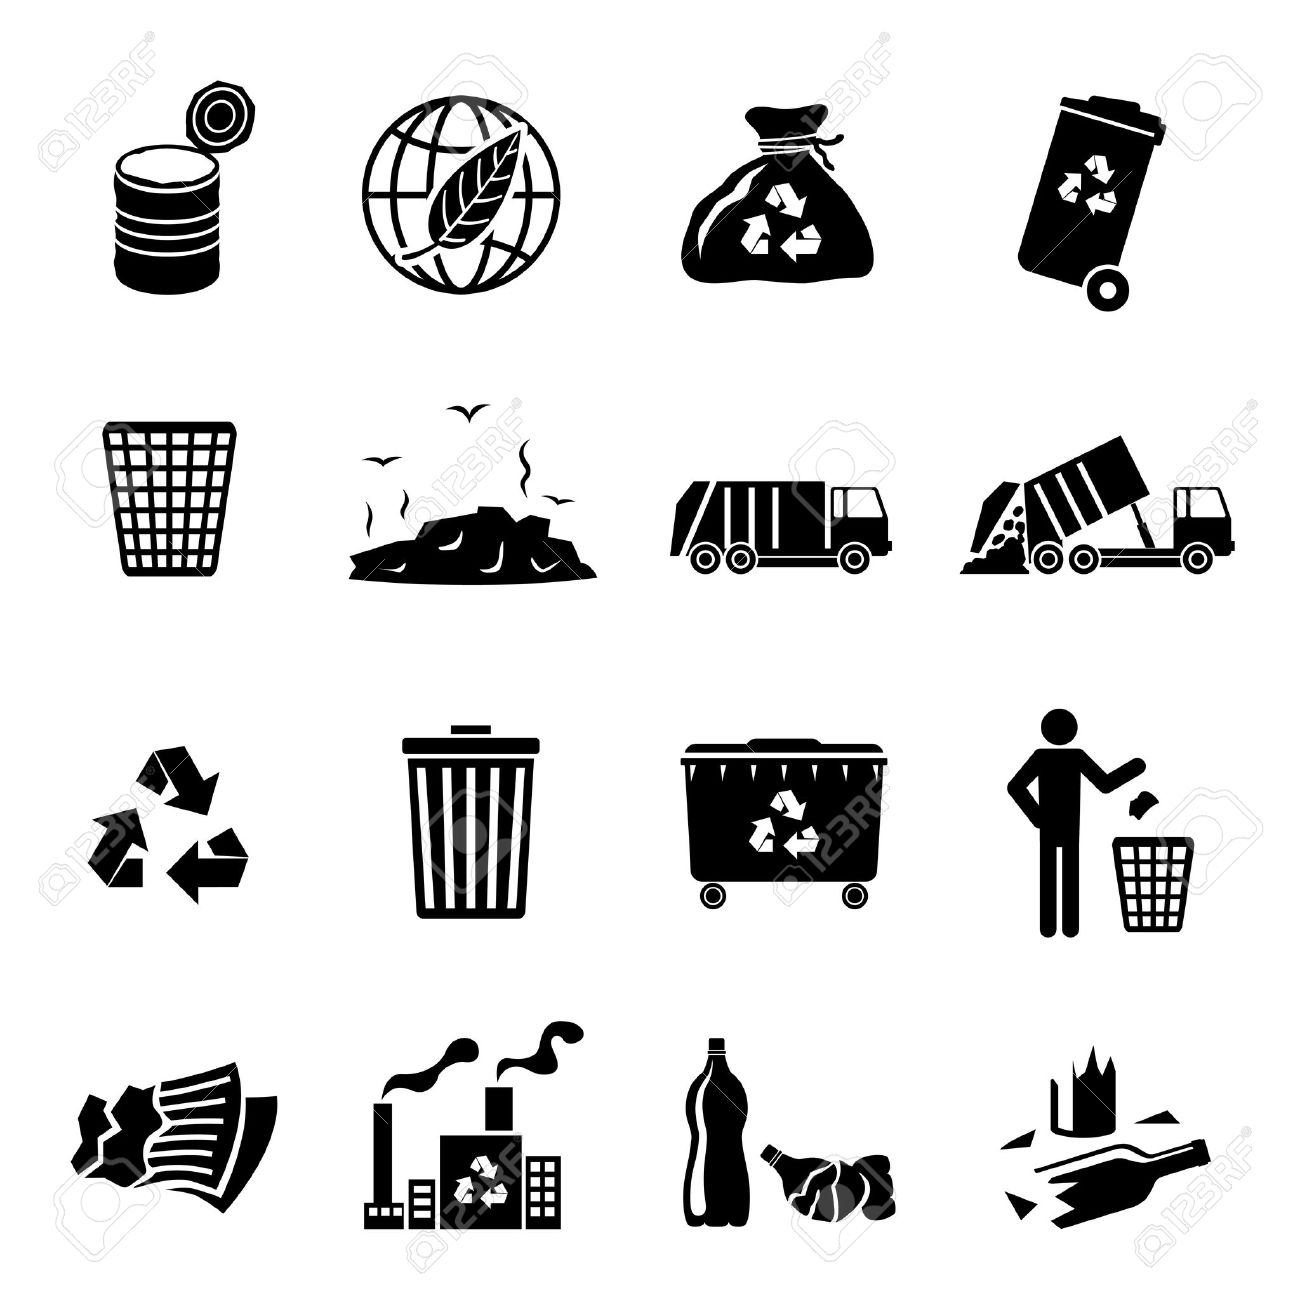 Garbage recycling icons black set of landfill trash truck dump isolated illustration - 32945848